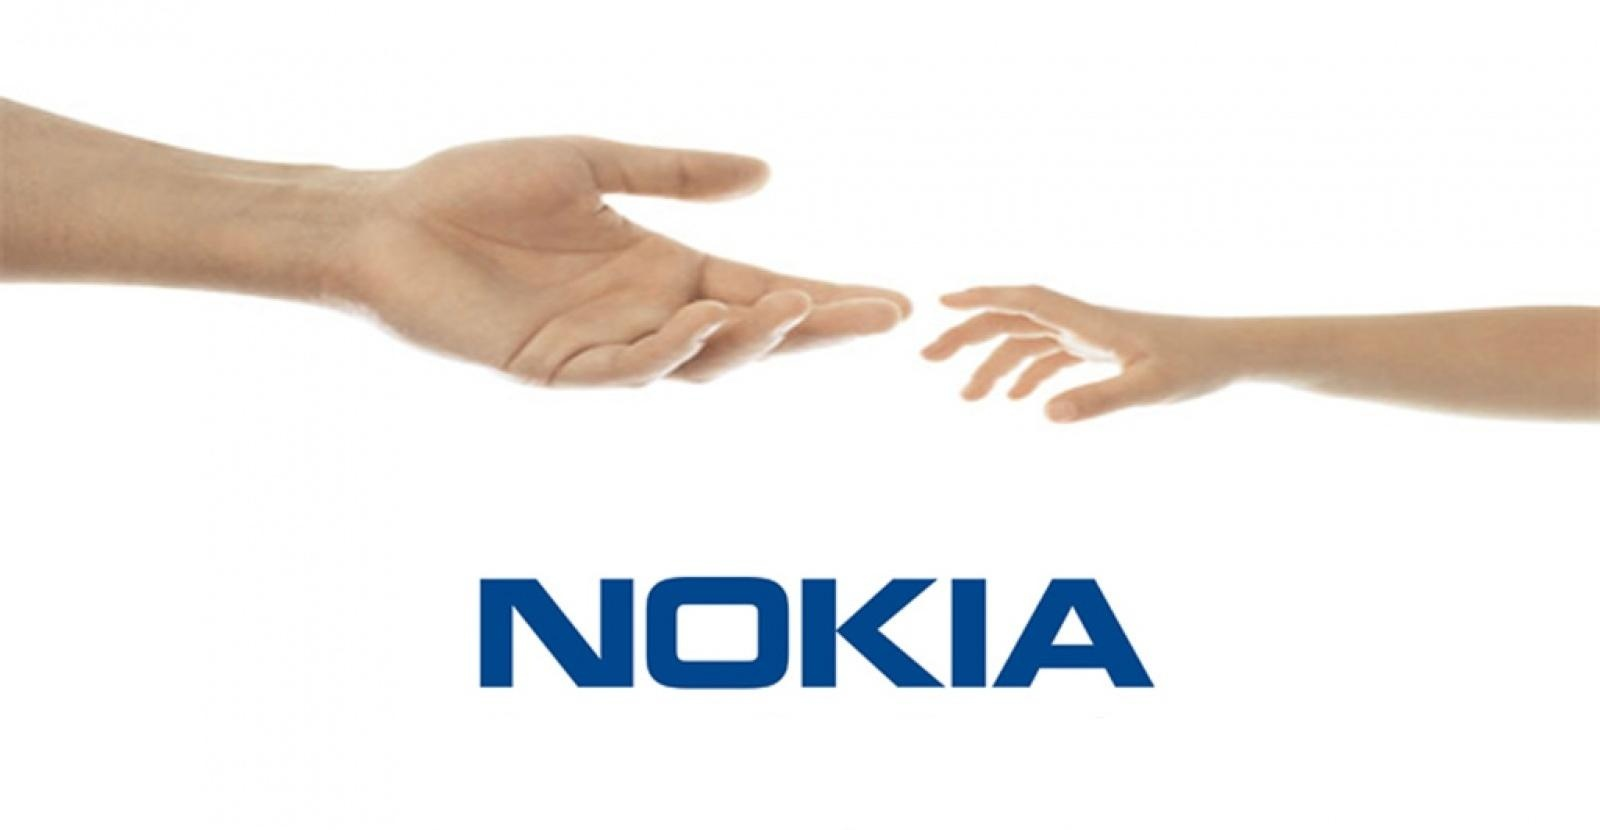 nokia-logo-with-hands-1600x830